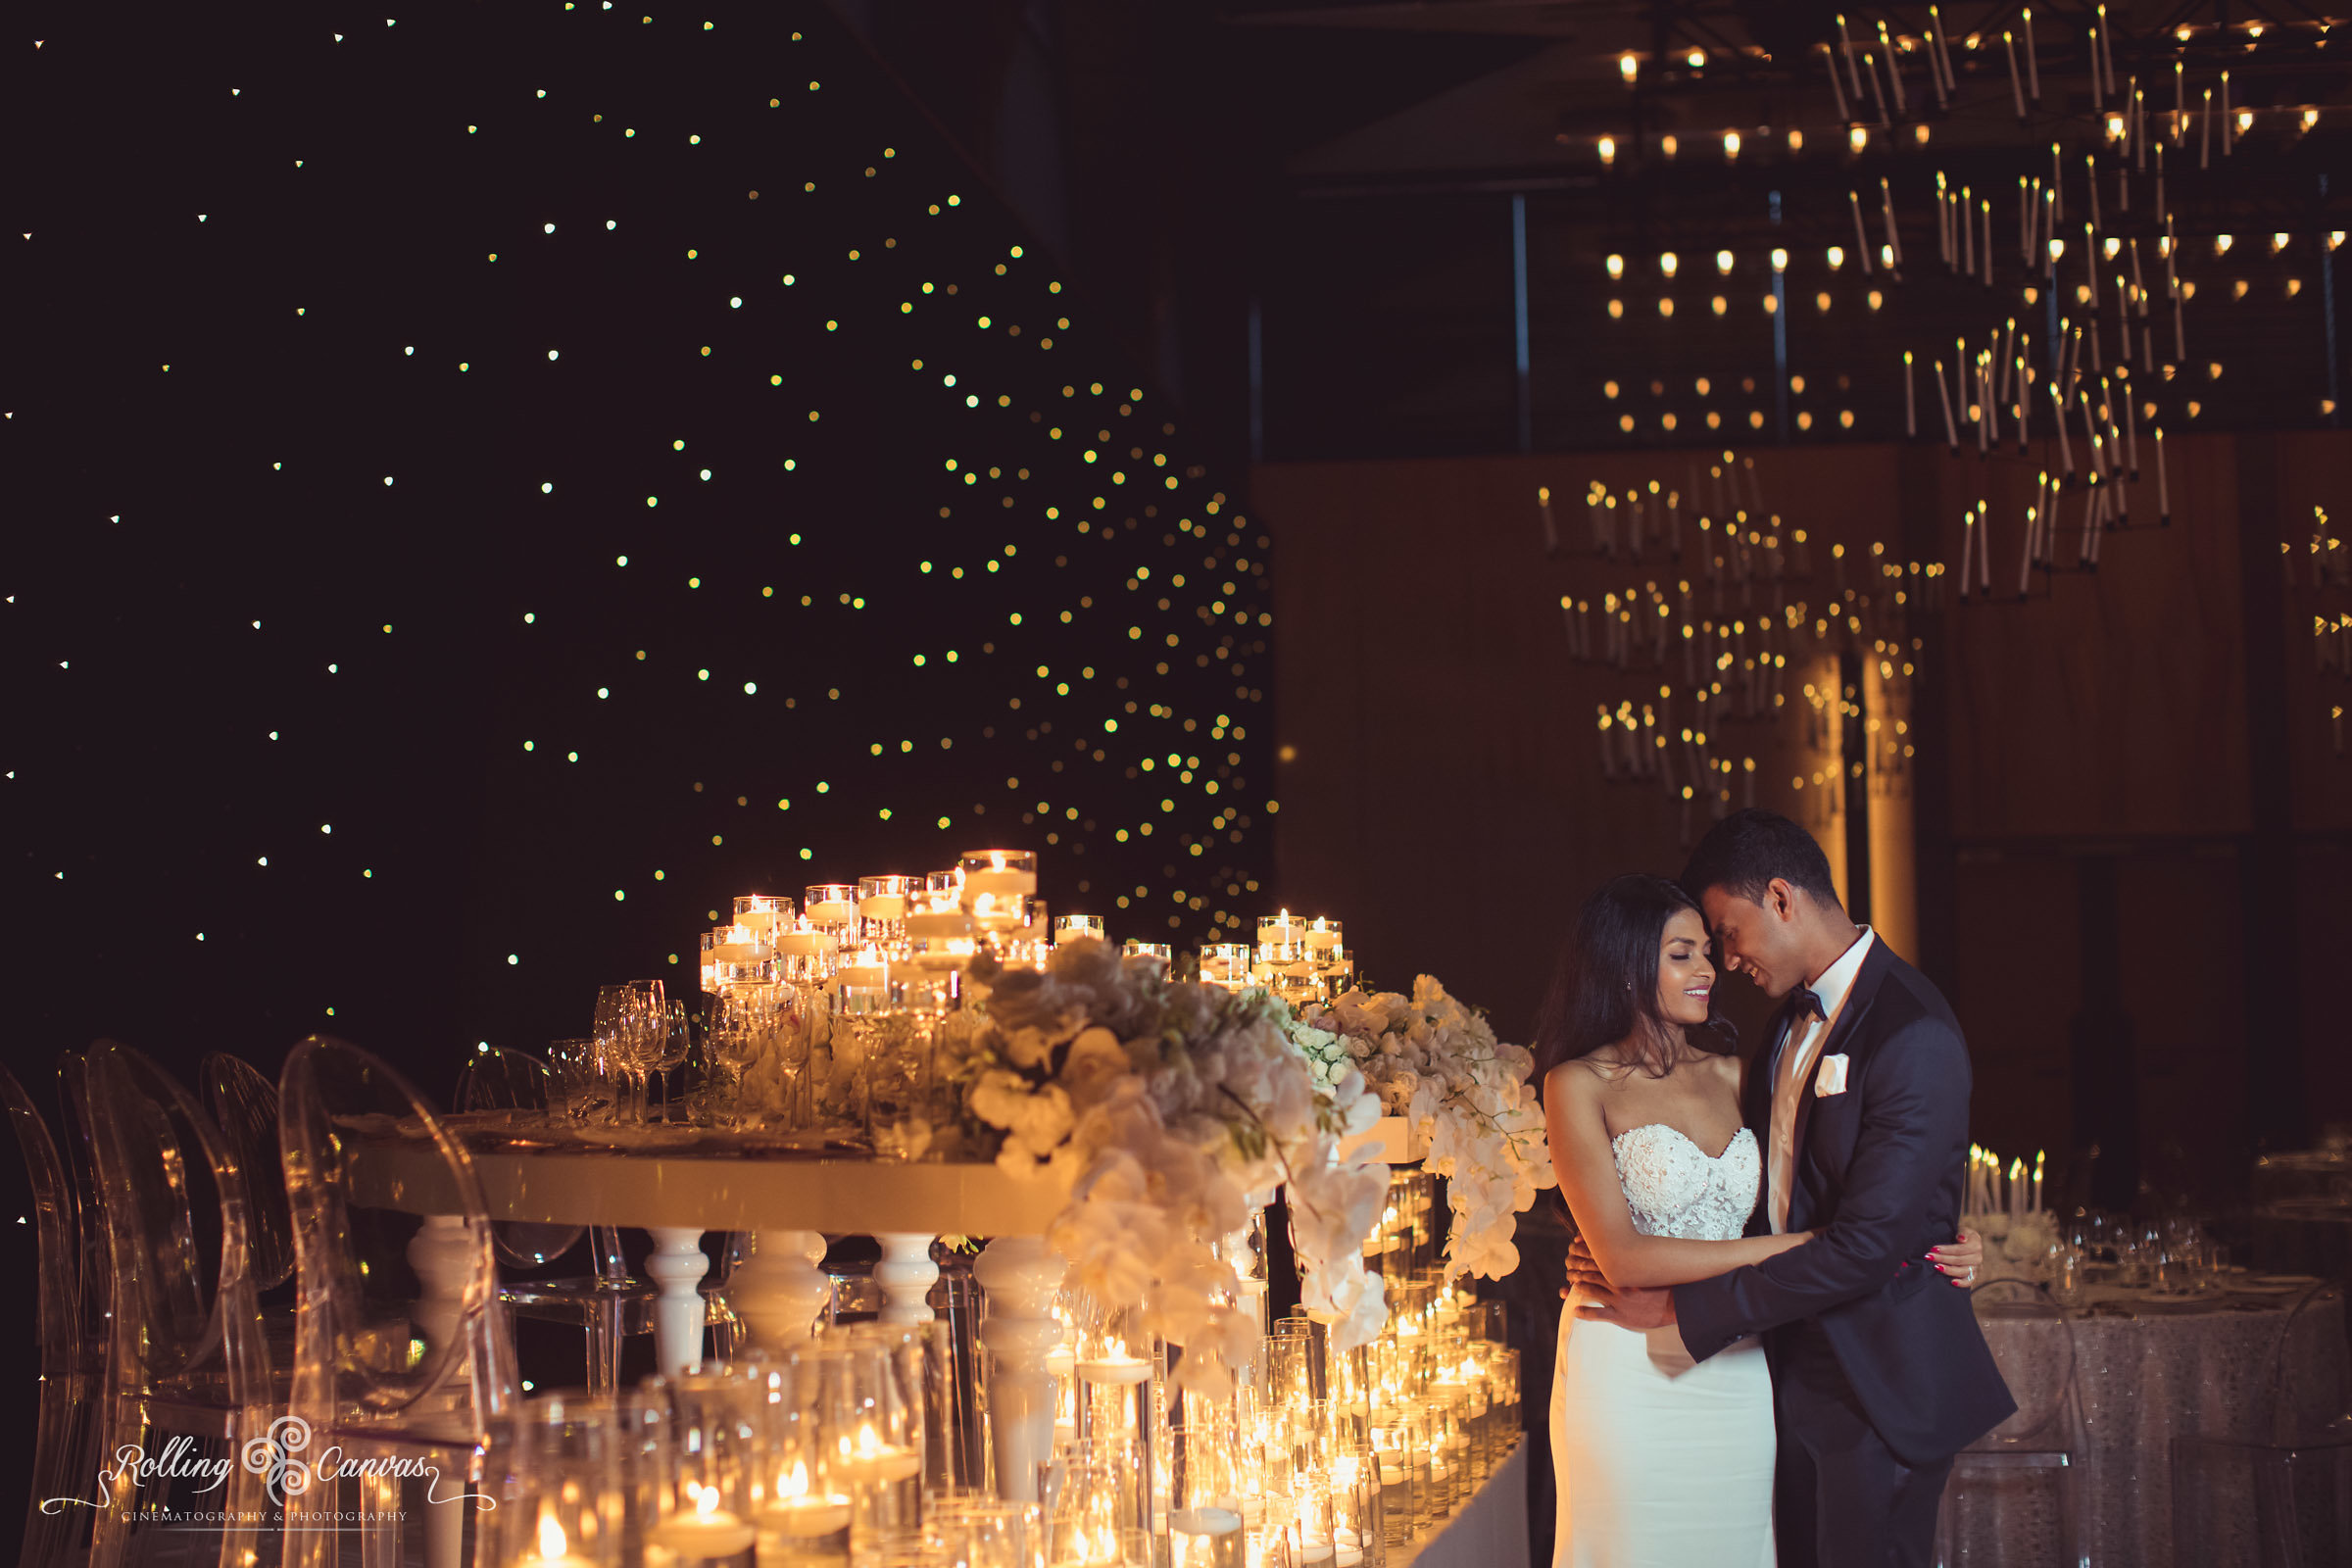 Wedding_Photography_Sydney_Rolling_Canvas_Presentation_elegant_reception_chandeliers_fairylights_white_dancefloor_luxury_linen_decor_bridal_table_Hyatt_Regency_Sydney-57247.jpg